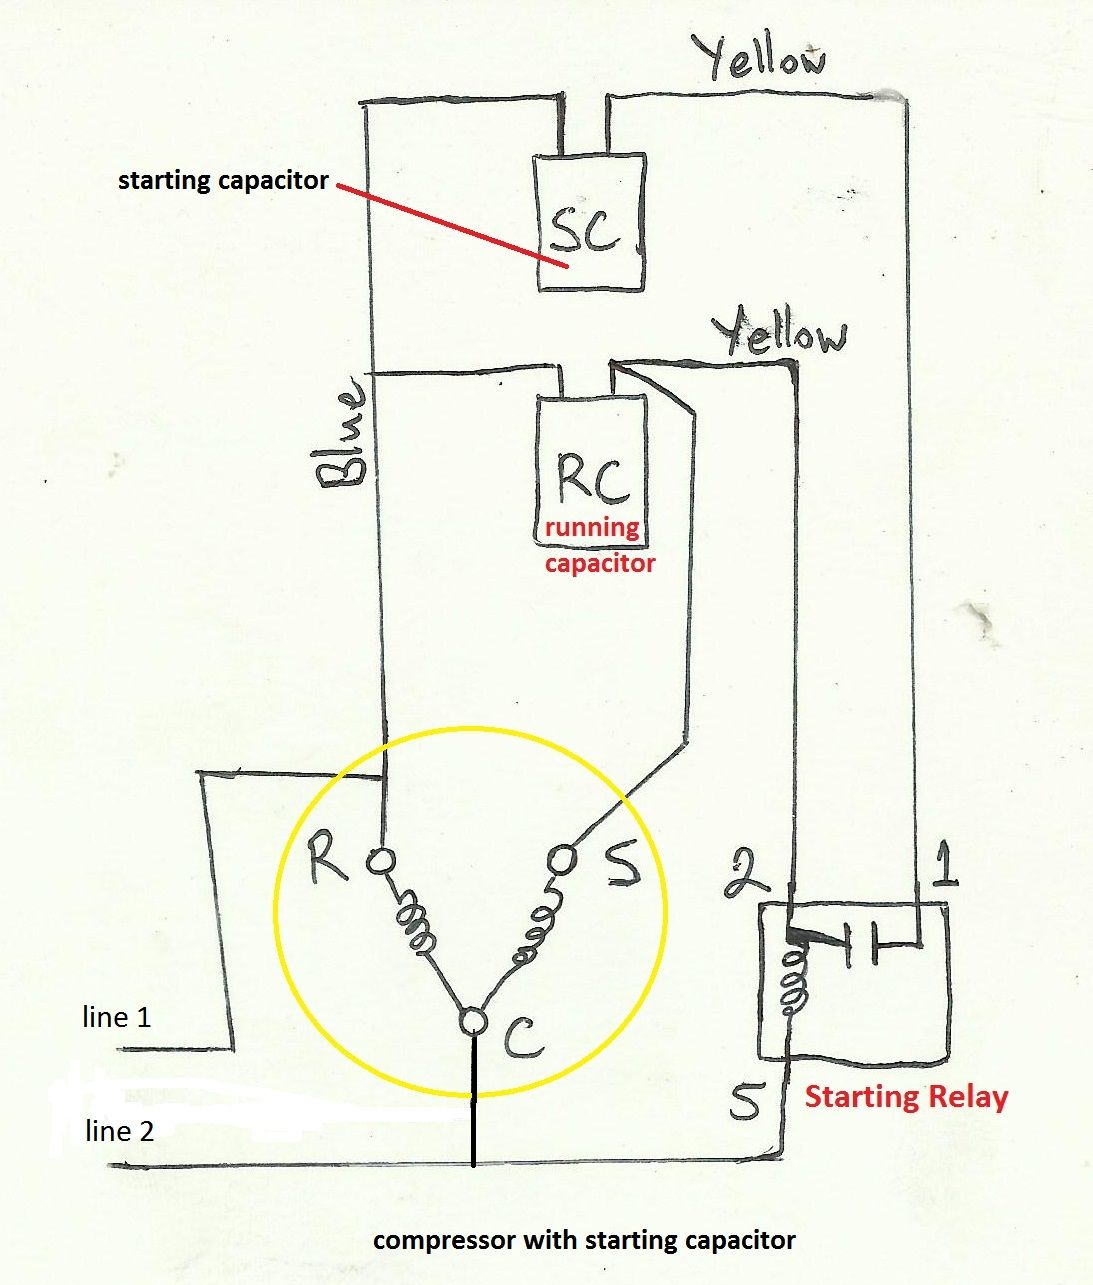 air compressor capacitor wiring diagram before you call a ac repair split ac compressor wiring diagram air compressor capacitor wiring diagram before you call a ac repair man visit my blog for some tips on how to save thousands in ac repairs